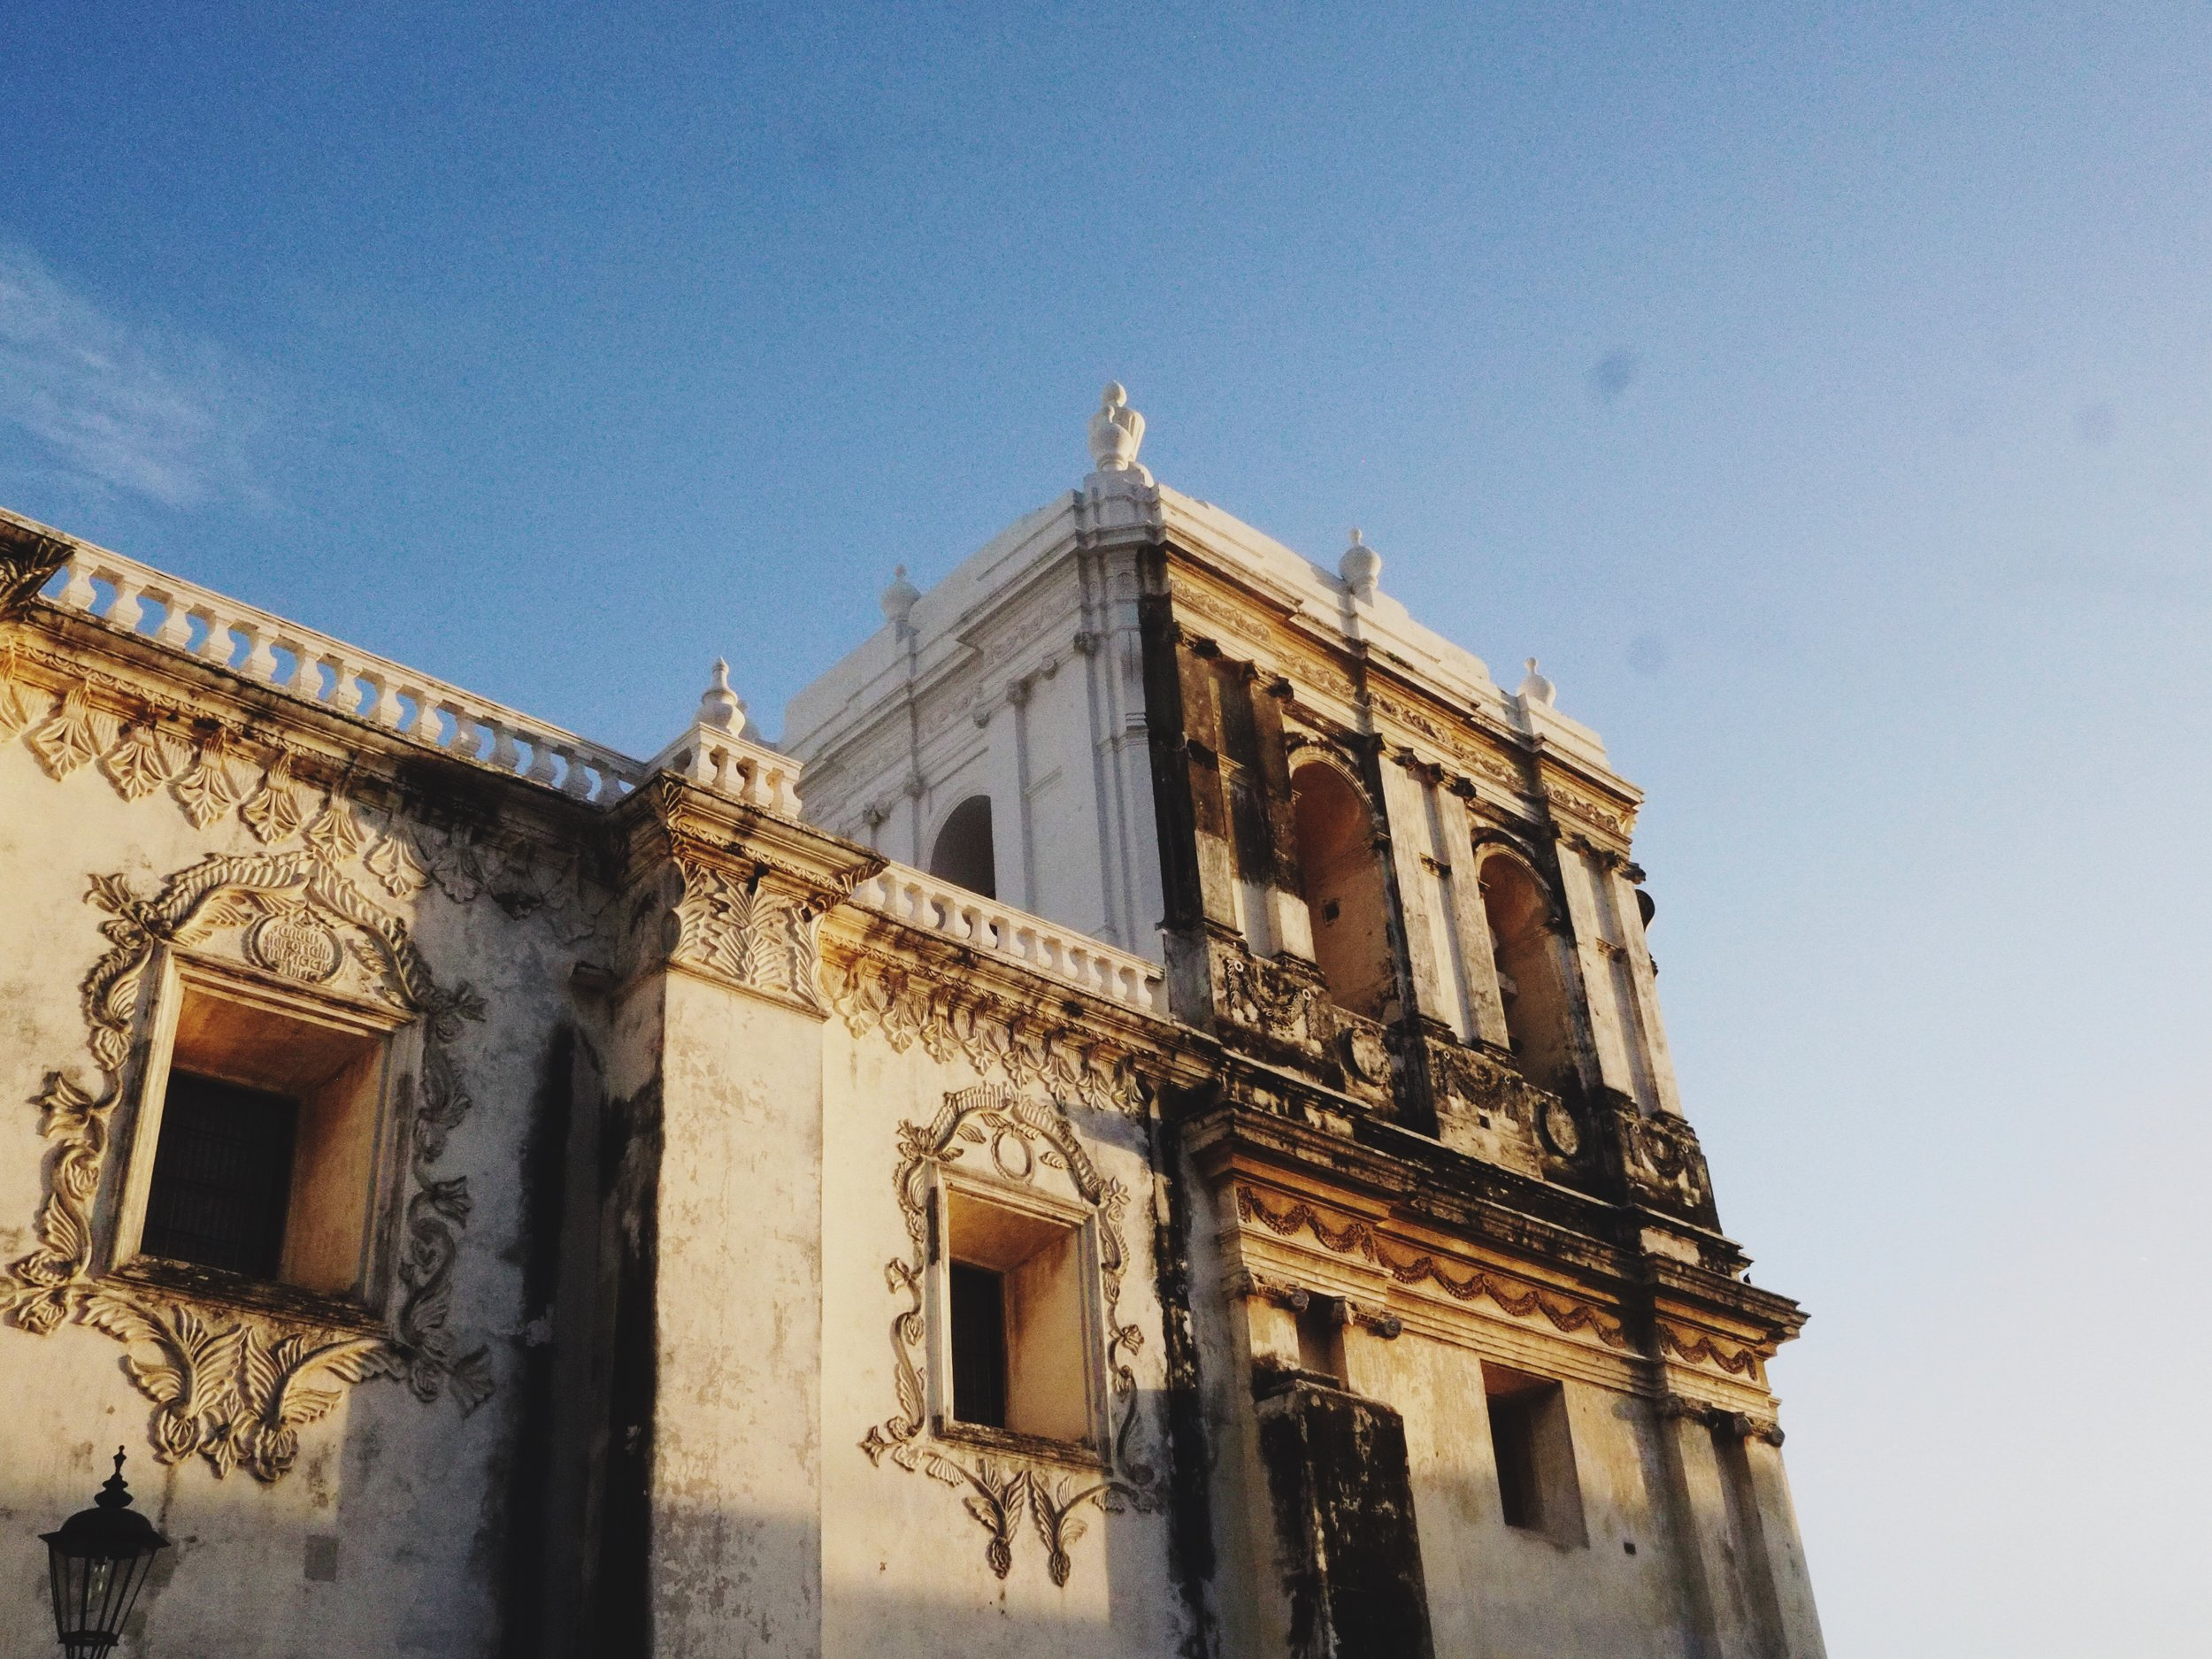 We arrived at golden hour and were immediately struck by the city's extraordinary architecture